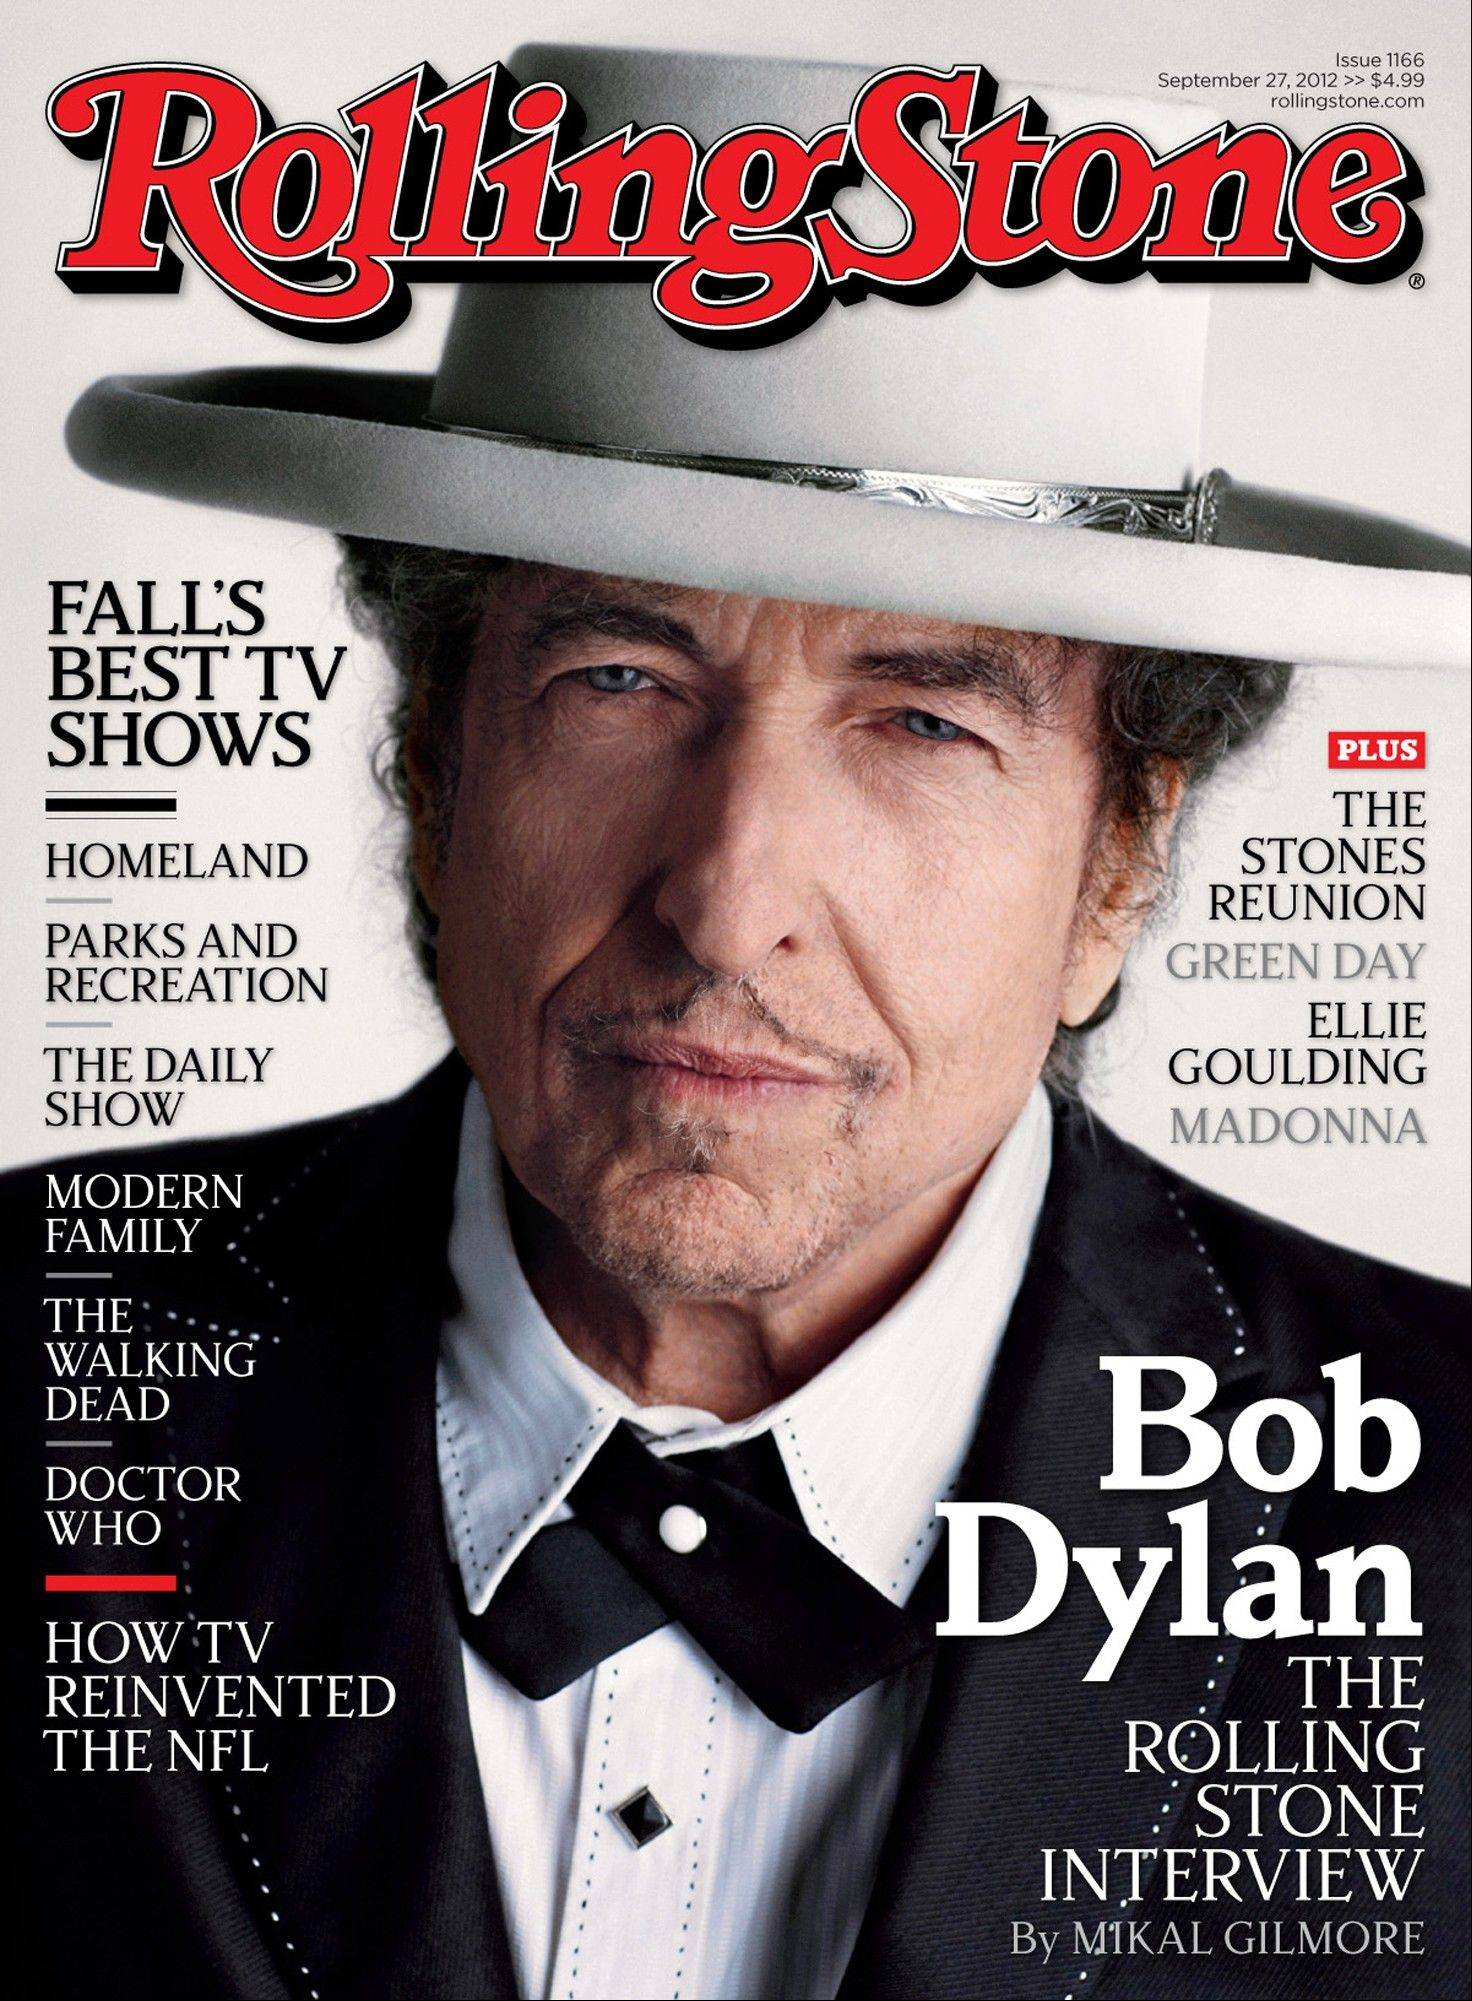 Bob Dylan: Stigma of slavery ruined America